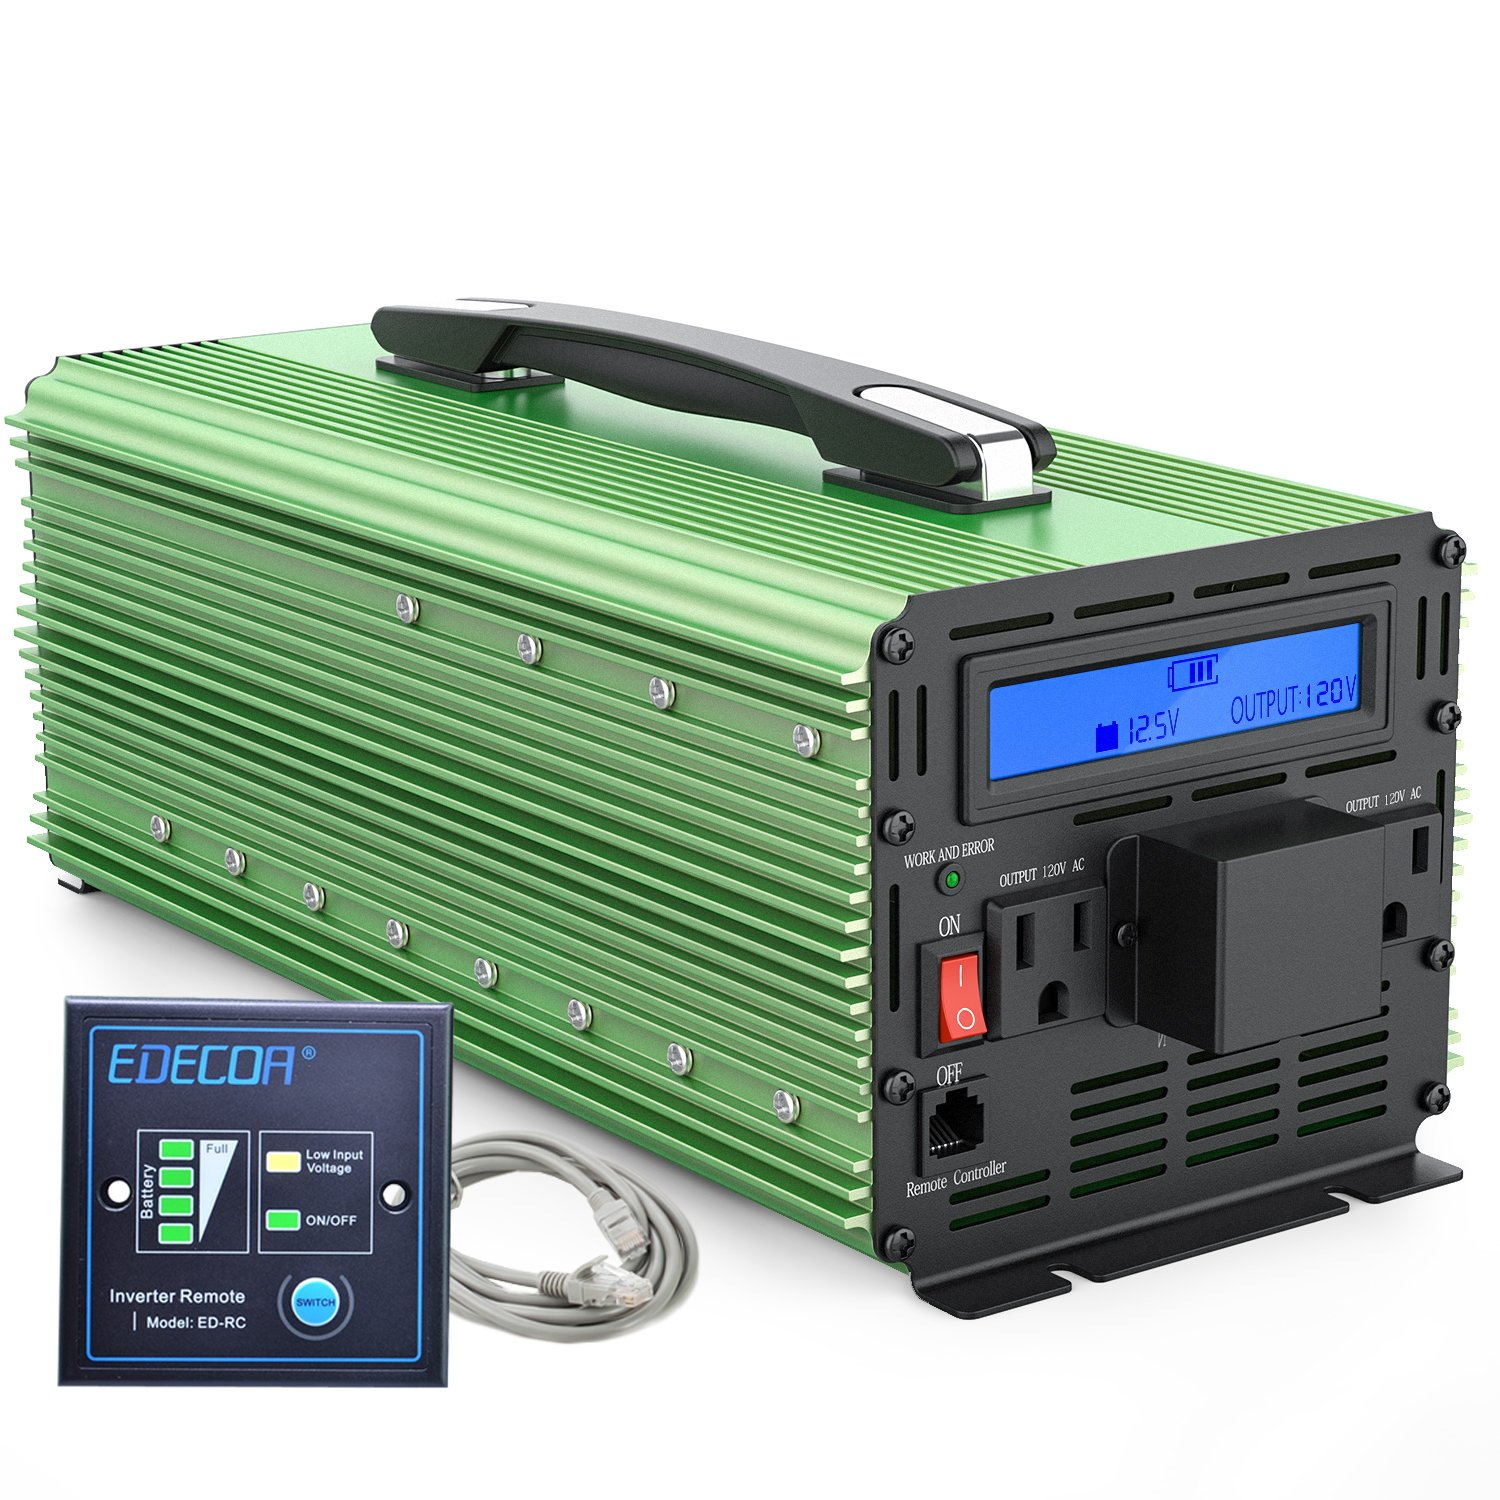 EDECOA 3000W Power Inverter Modified Sine Wave DC 12V to 110V AC with LCD Display and Remote by EDECOA